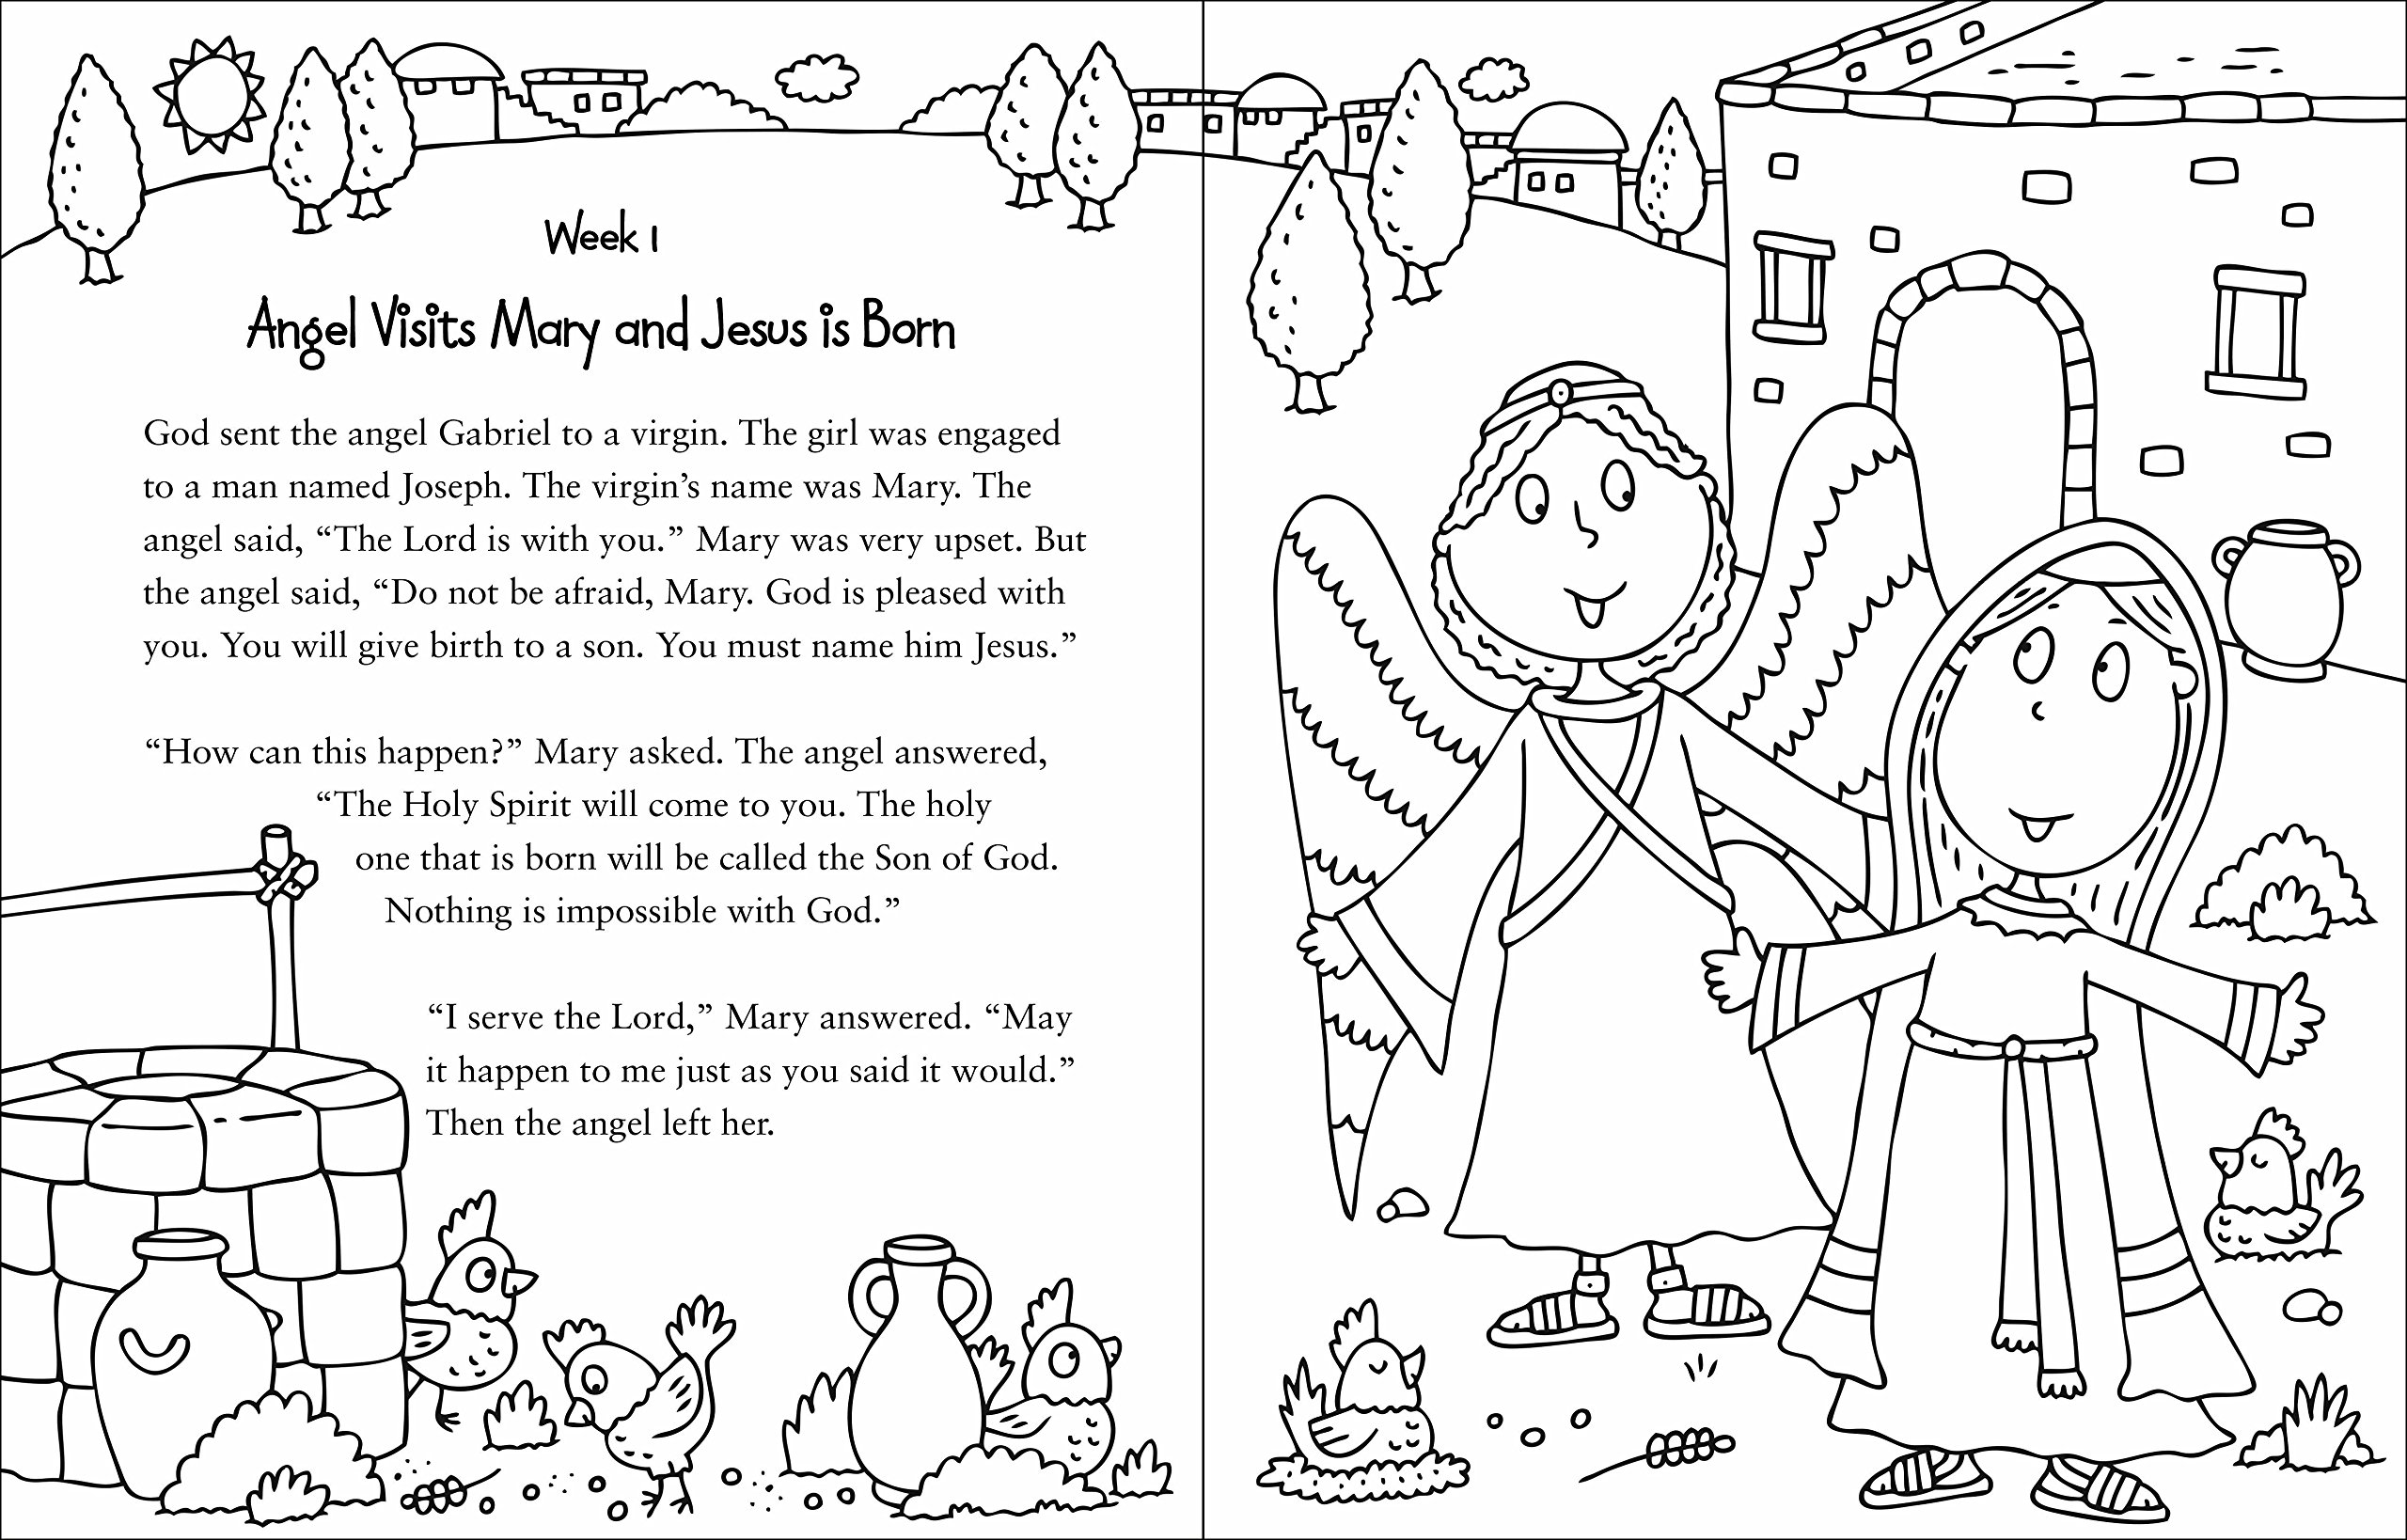 My Bible Story Coloring Book The Books Of Zondervan 9780310761068